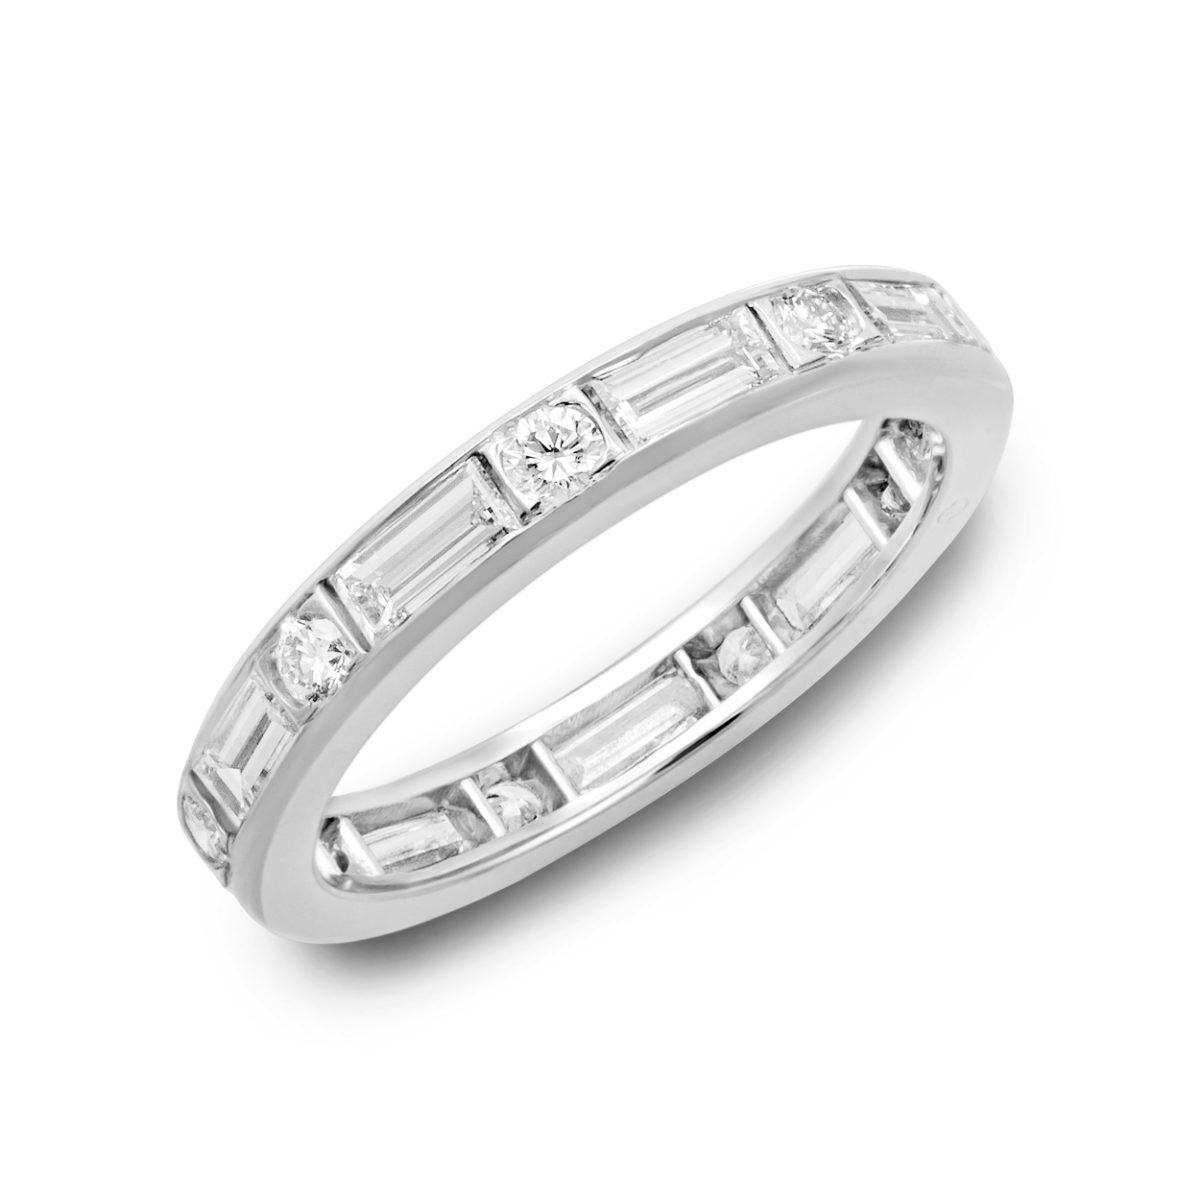 oscar heyman round emerald cut diamond eternity band - Emerald Cut Wedding Ring